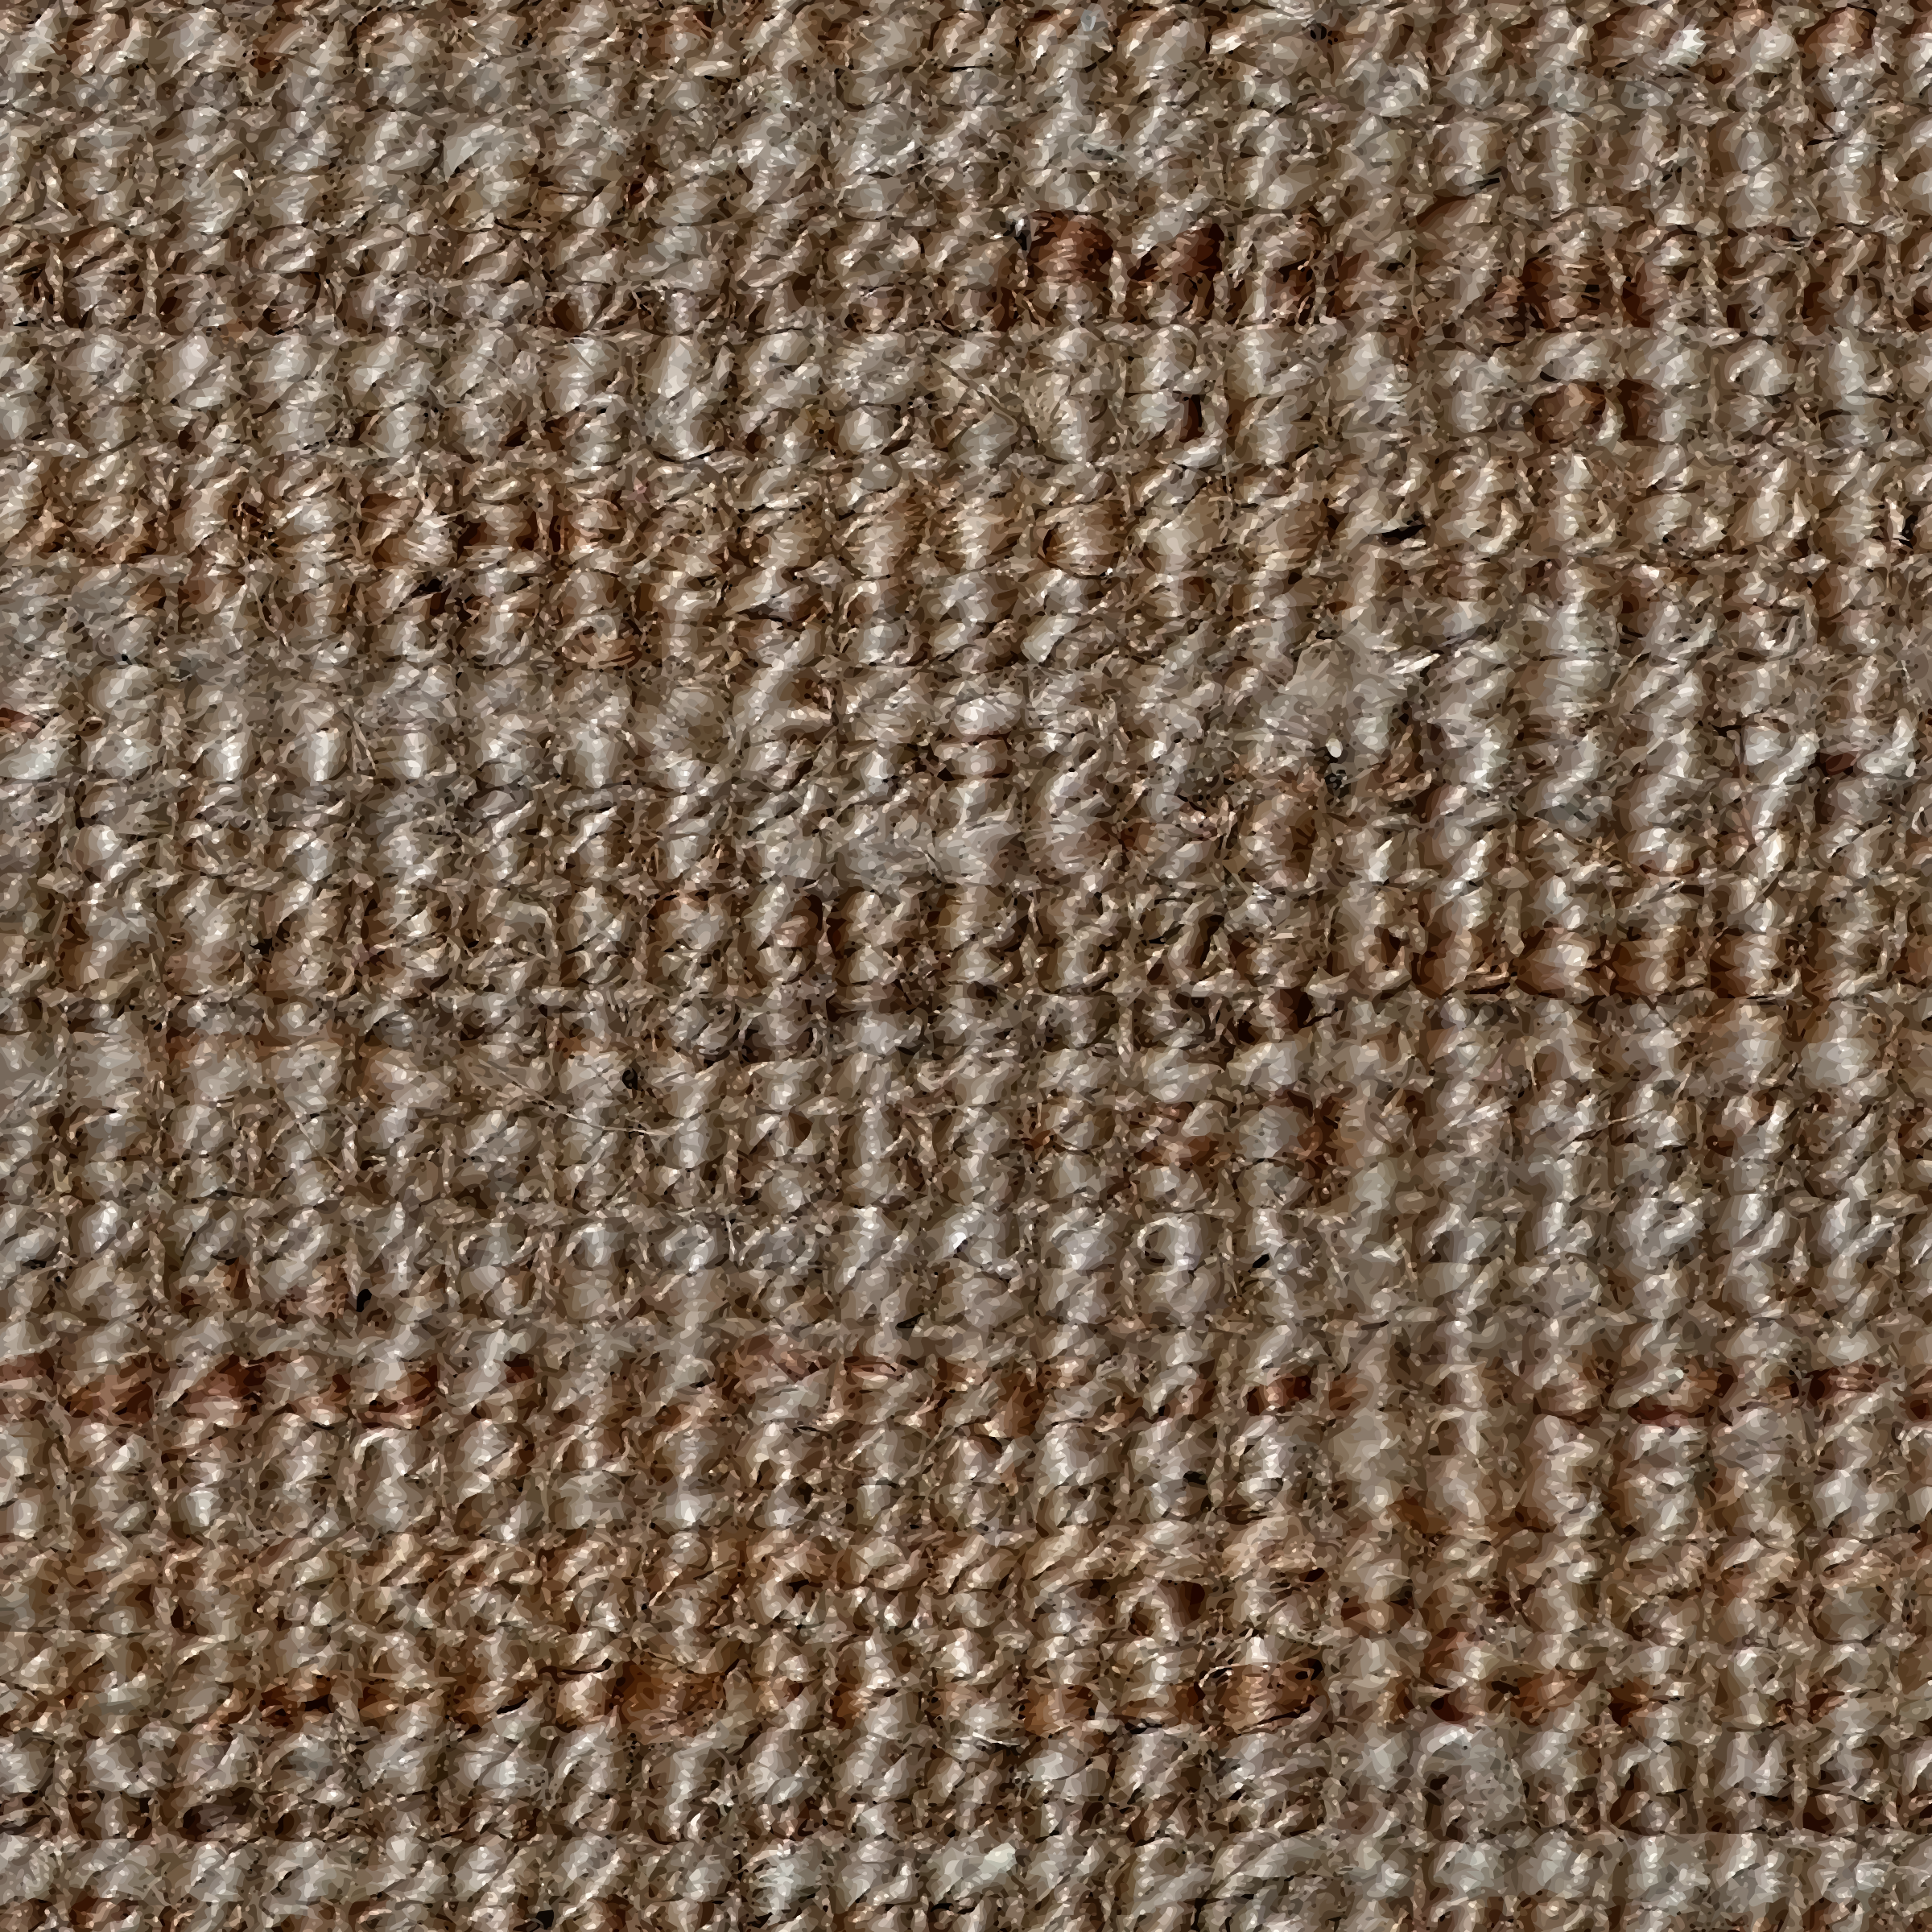 Wicker rug by Firkin